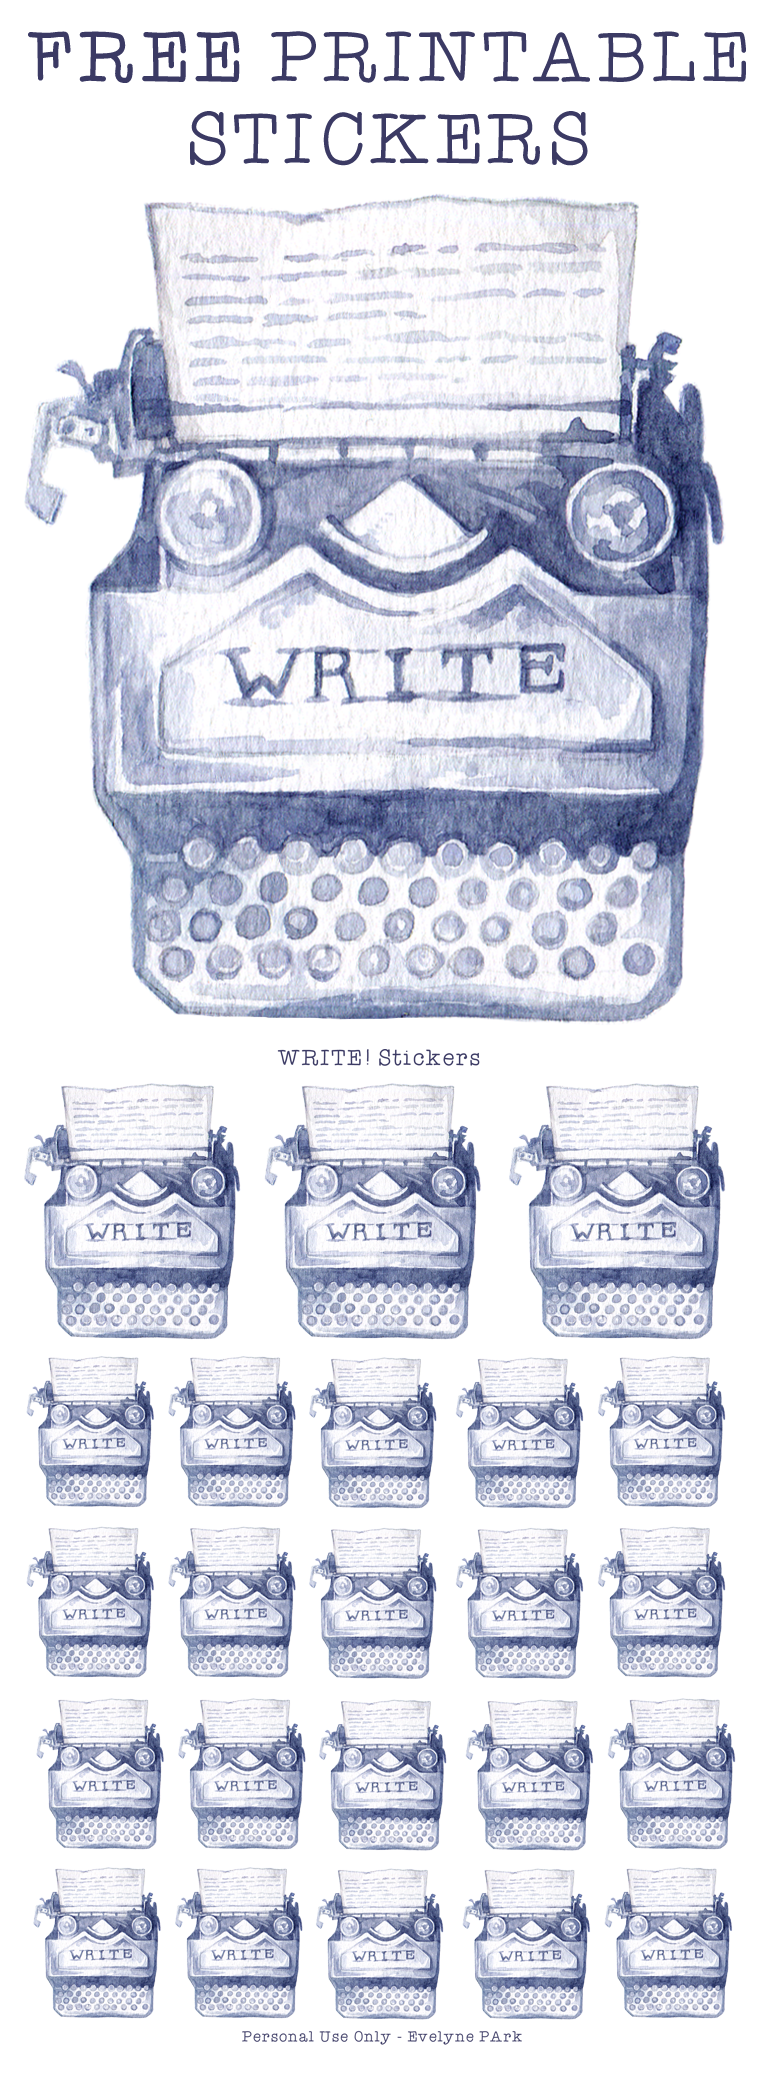 """A sheet full of this """"WRITER"""" typewriter sticker motive, in two different sizes.  Painted in watercolor, this planner sticker is perfect for marking writing time in your daily schedule and looks gorgeous in minimalist or vintage themed bullet journals!  JPG 300 DPI, US letter size"""